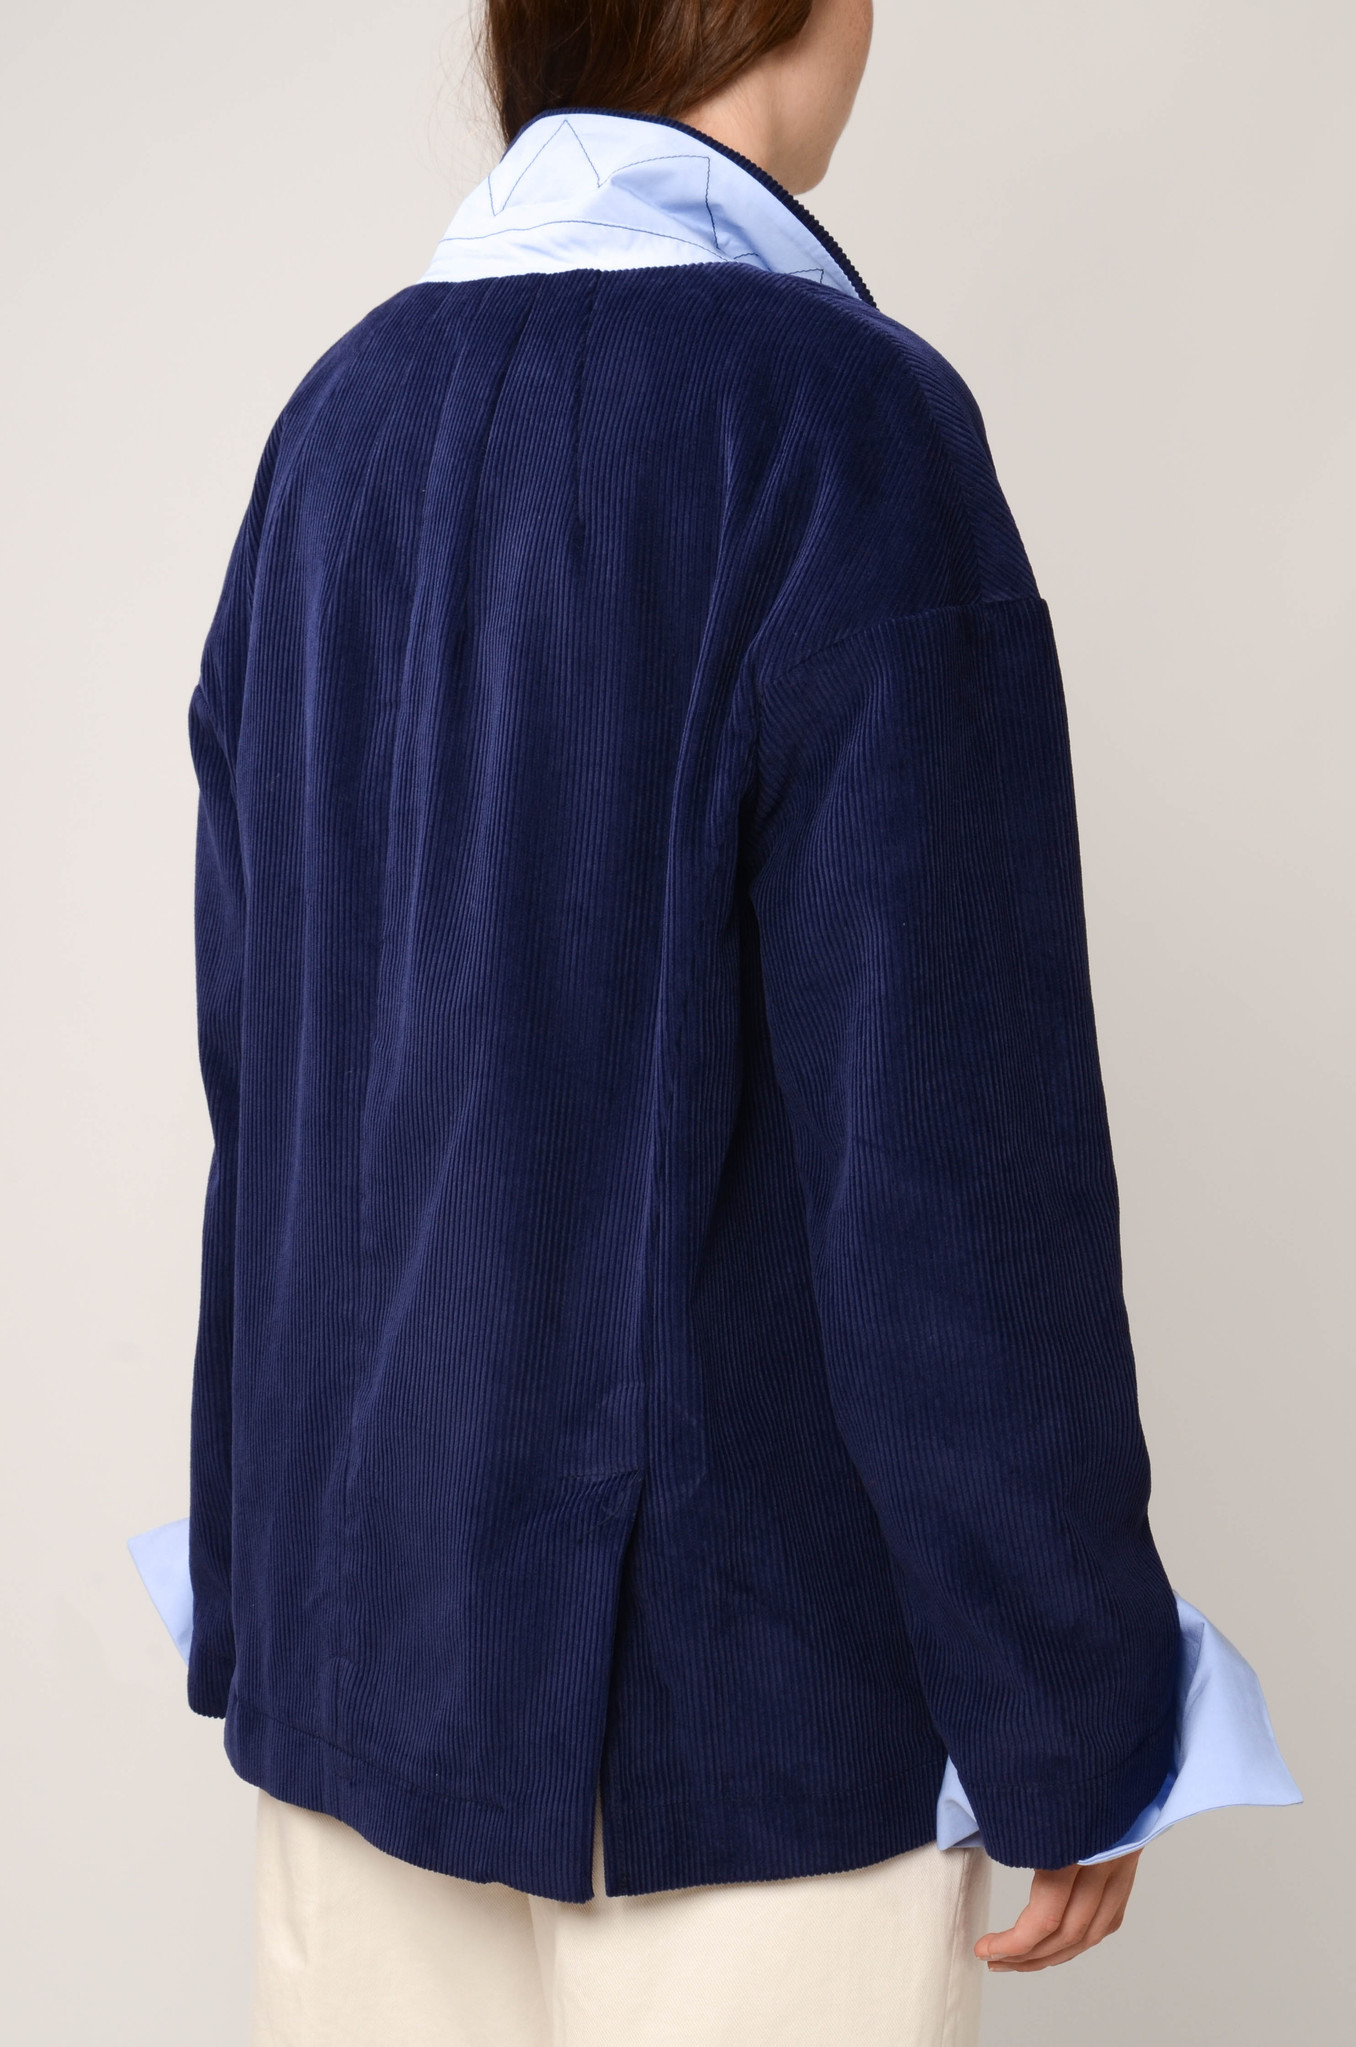 CAMILLE JACKET IN ROYAL BLUE-4